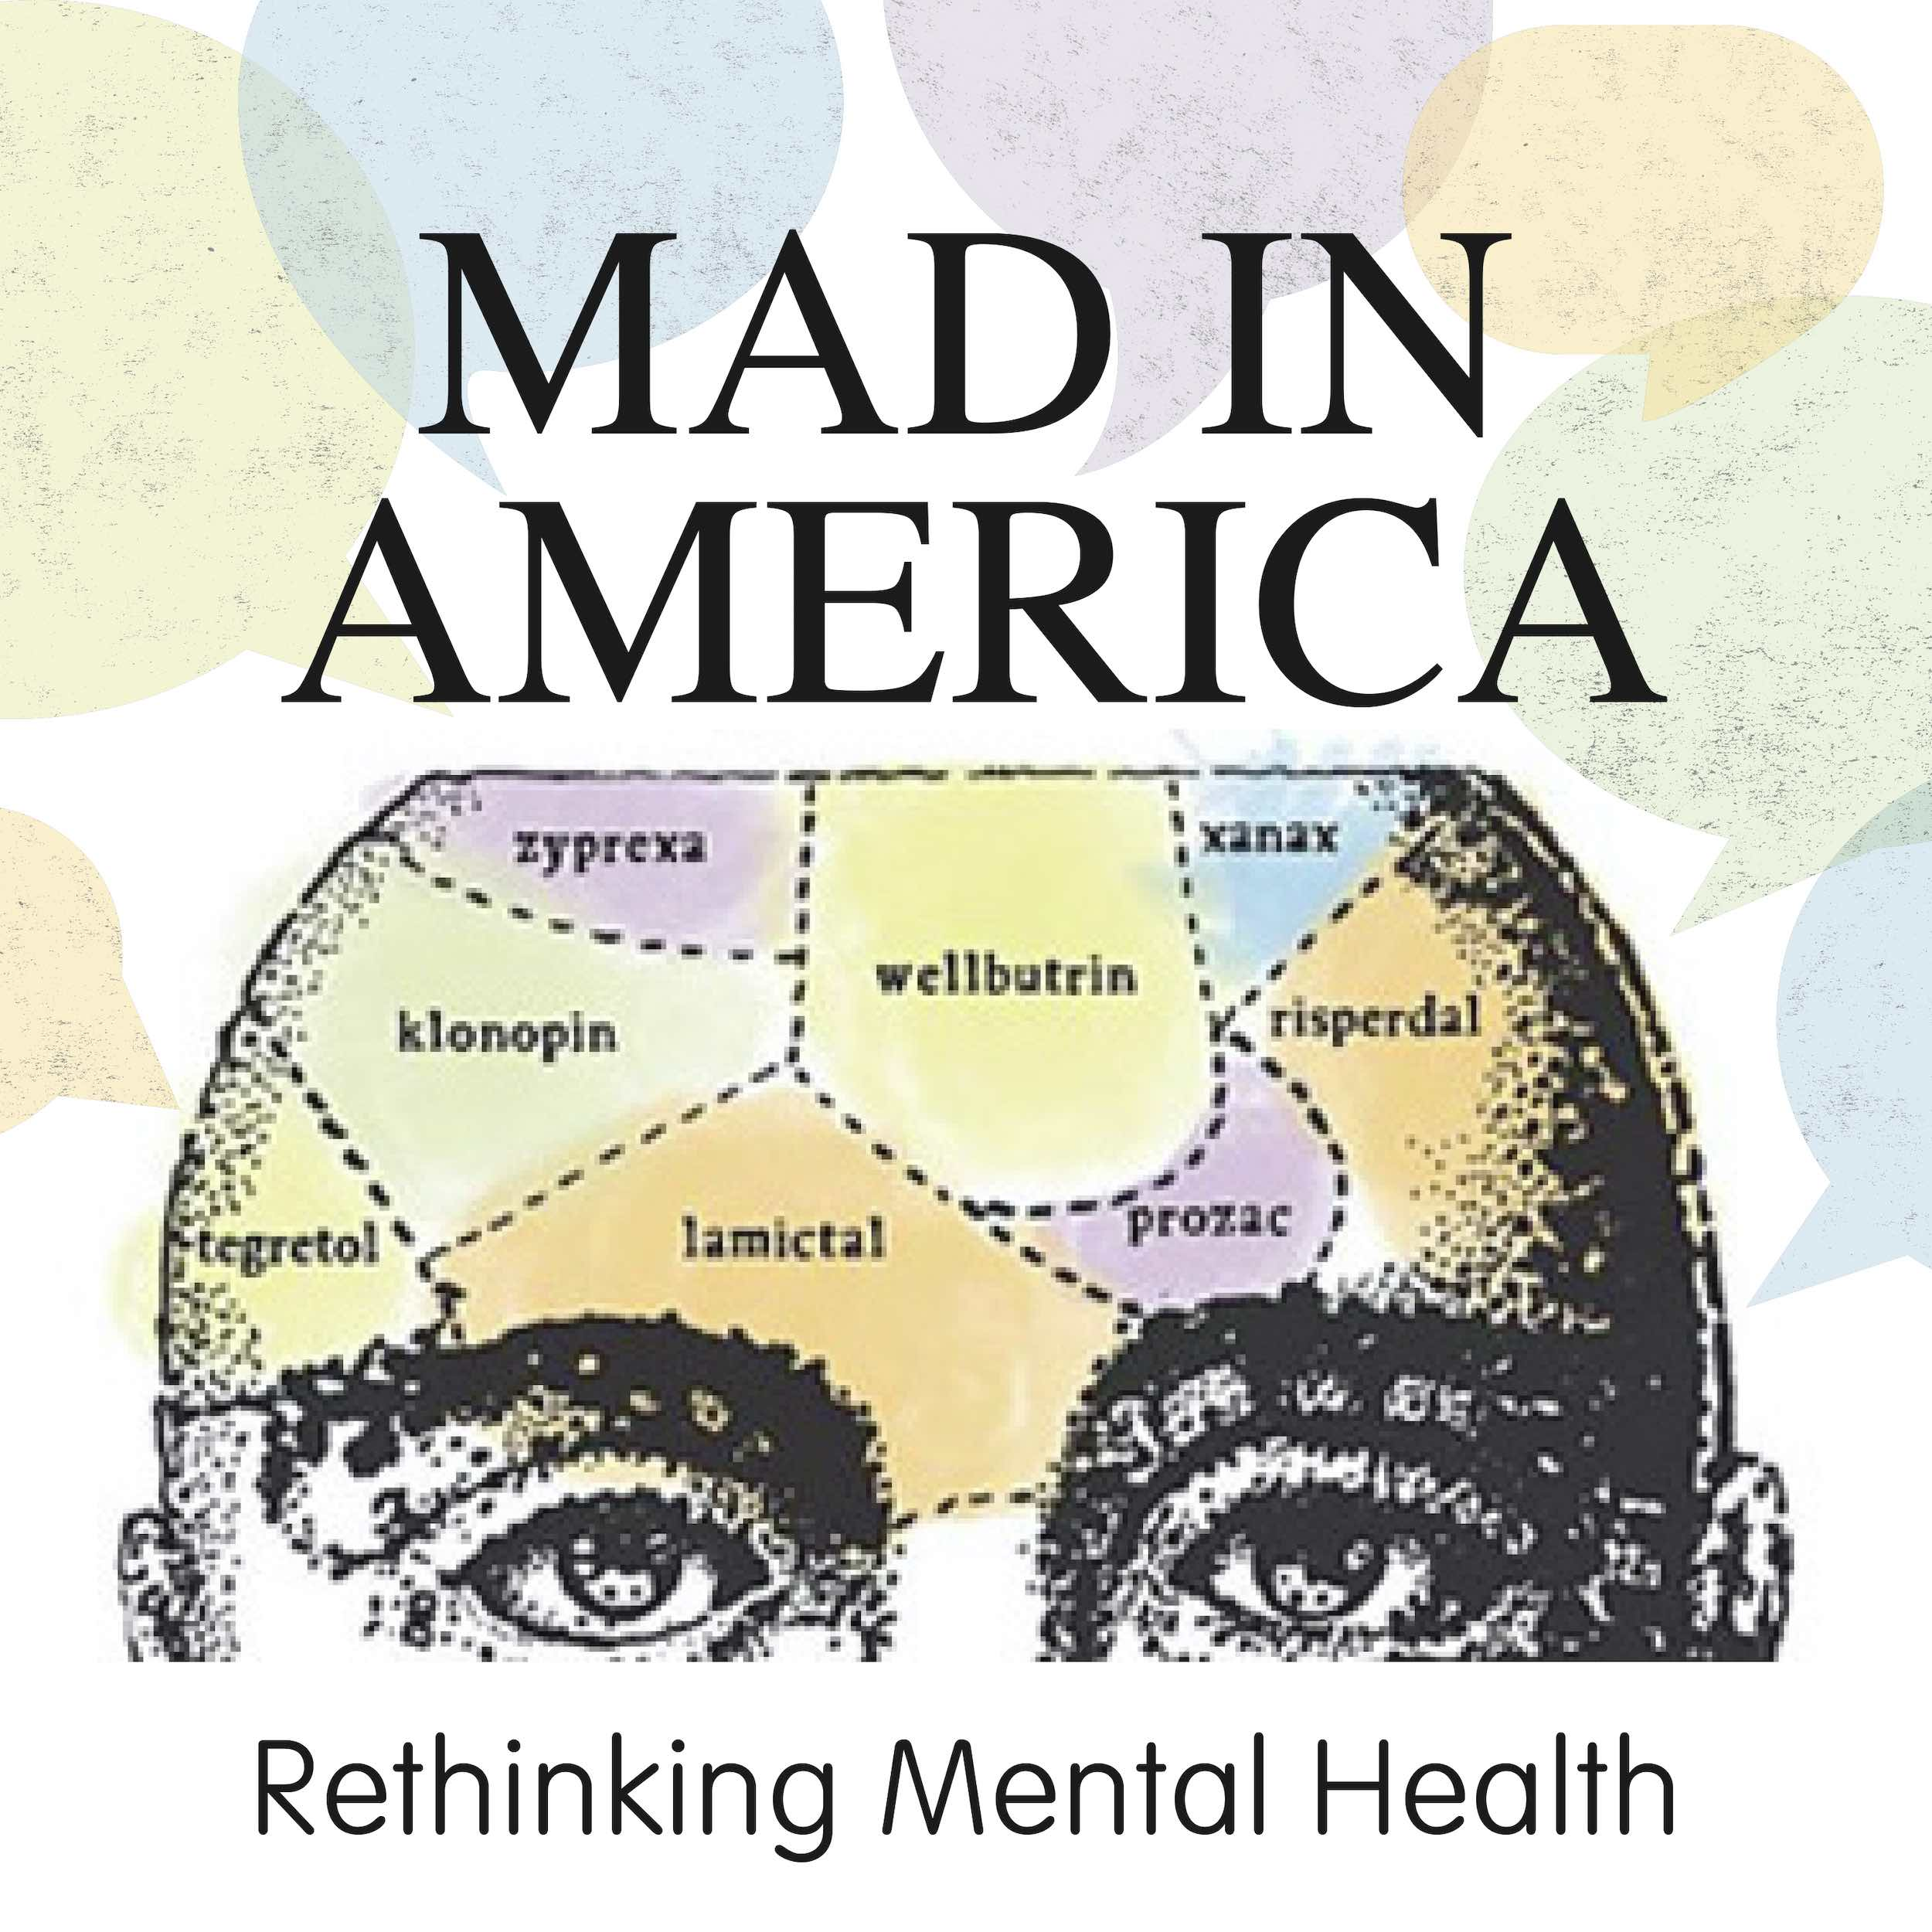 Mad in America: Rethinking Mental Health - Janice Haaken - Trauma and Mental Health in Social Movements